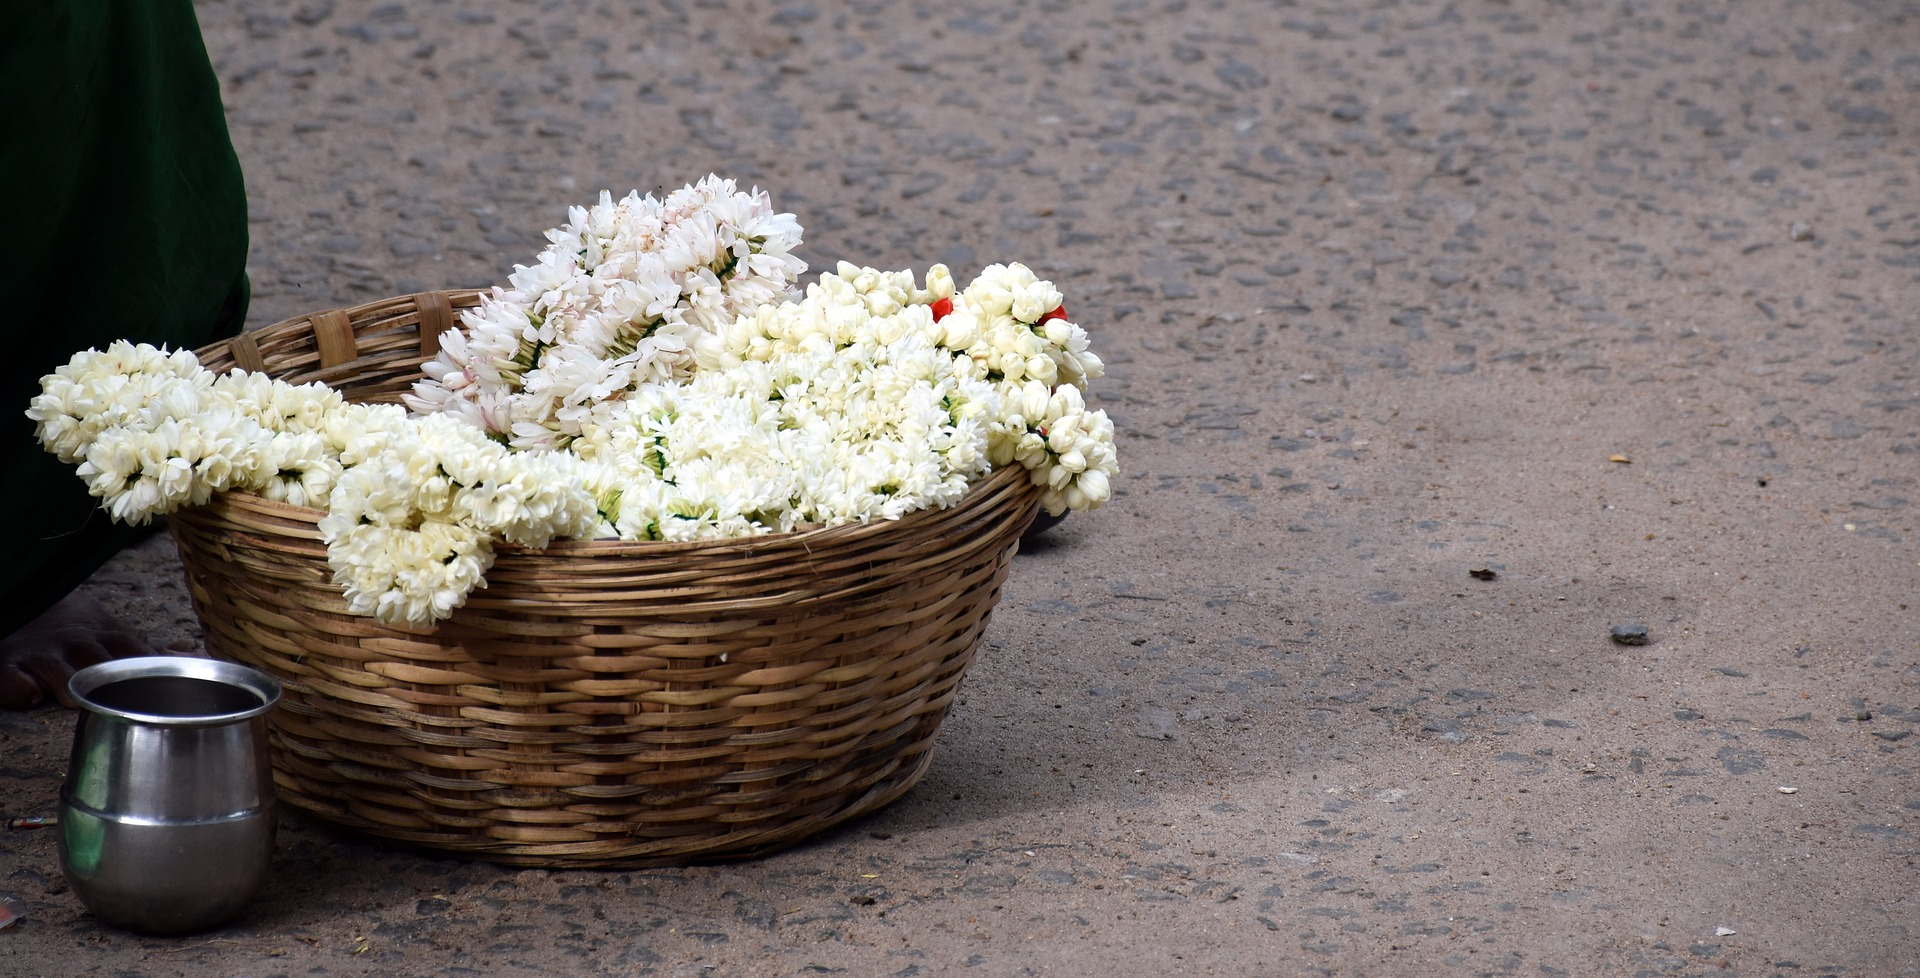 a basket of flowers in Madurai